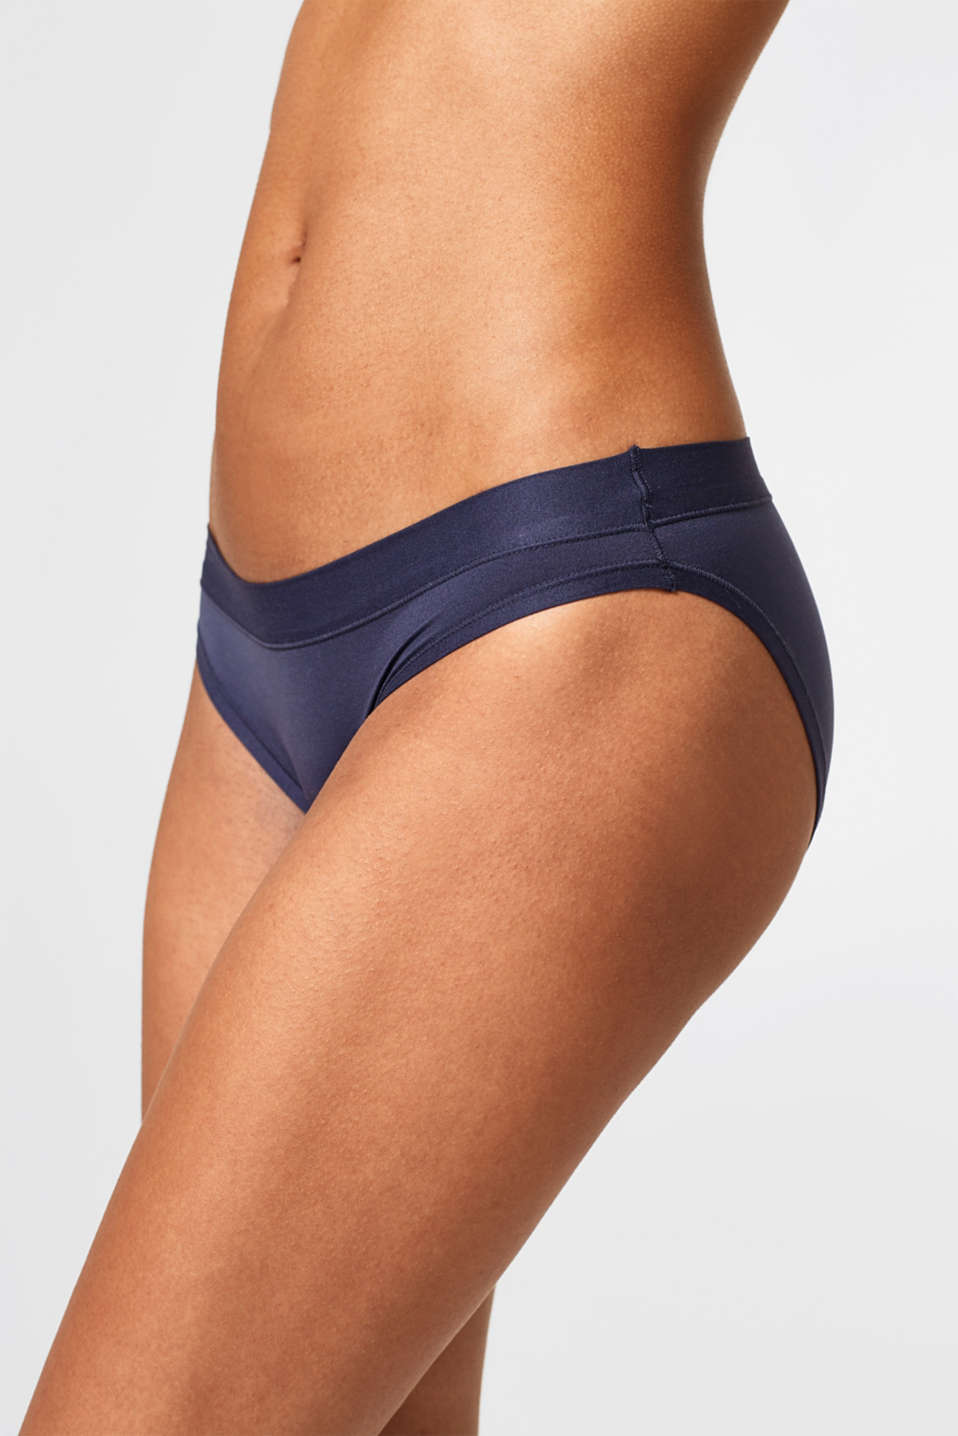 AIR hipster briefs in a basic design